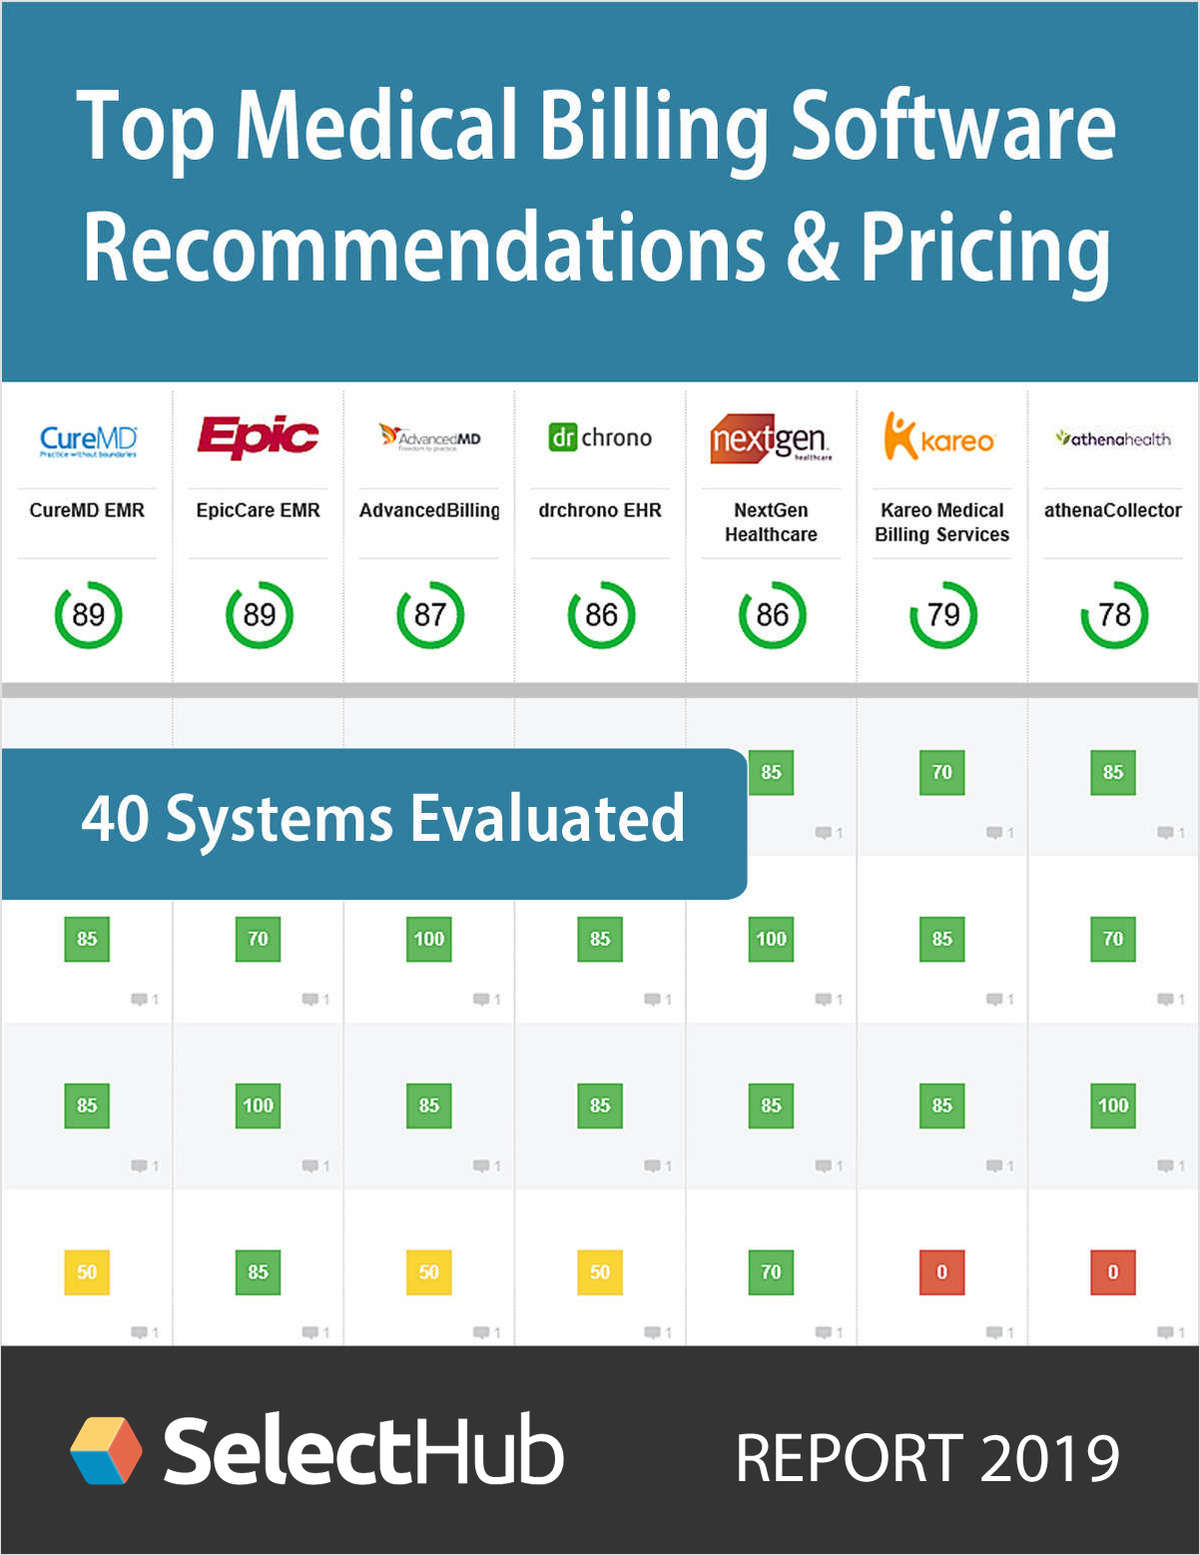 Top Medical Billing Software 2019--Expert Recommendations & Pricing